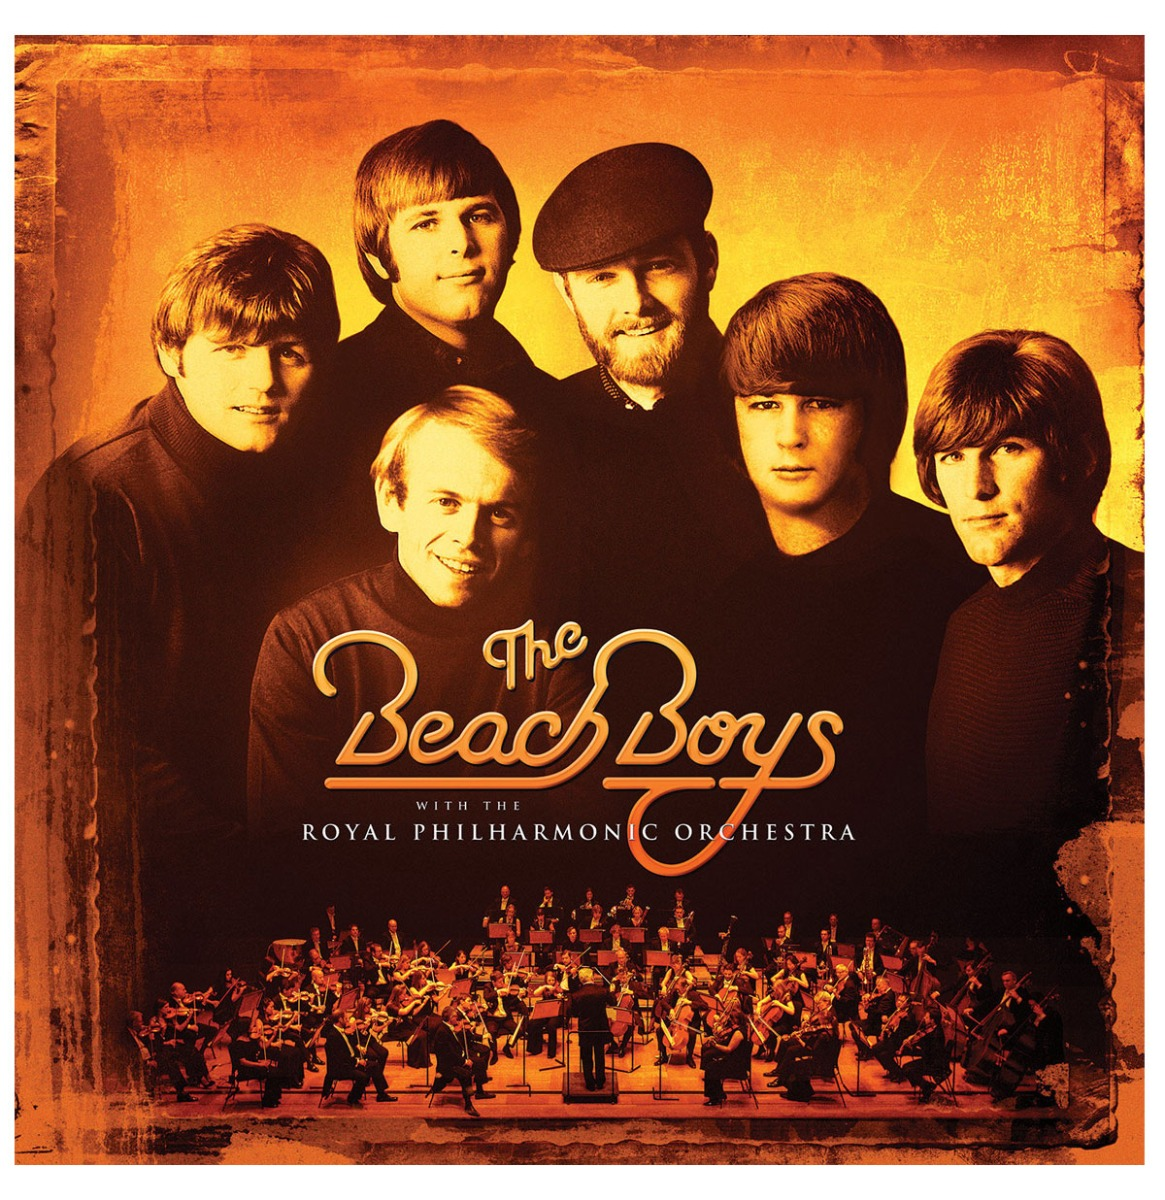 The Beach Boys With The Royal Philharmonic Orchestra 2-LP